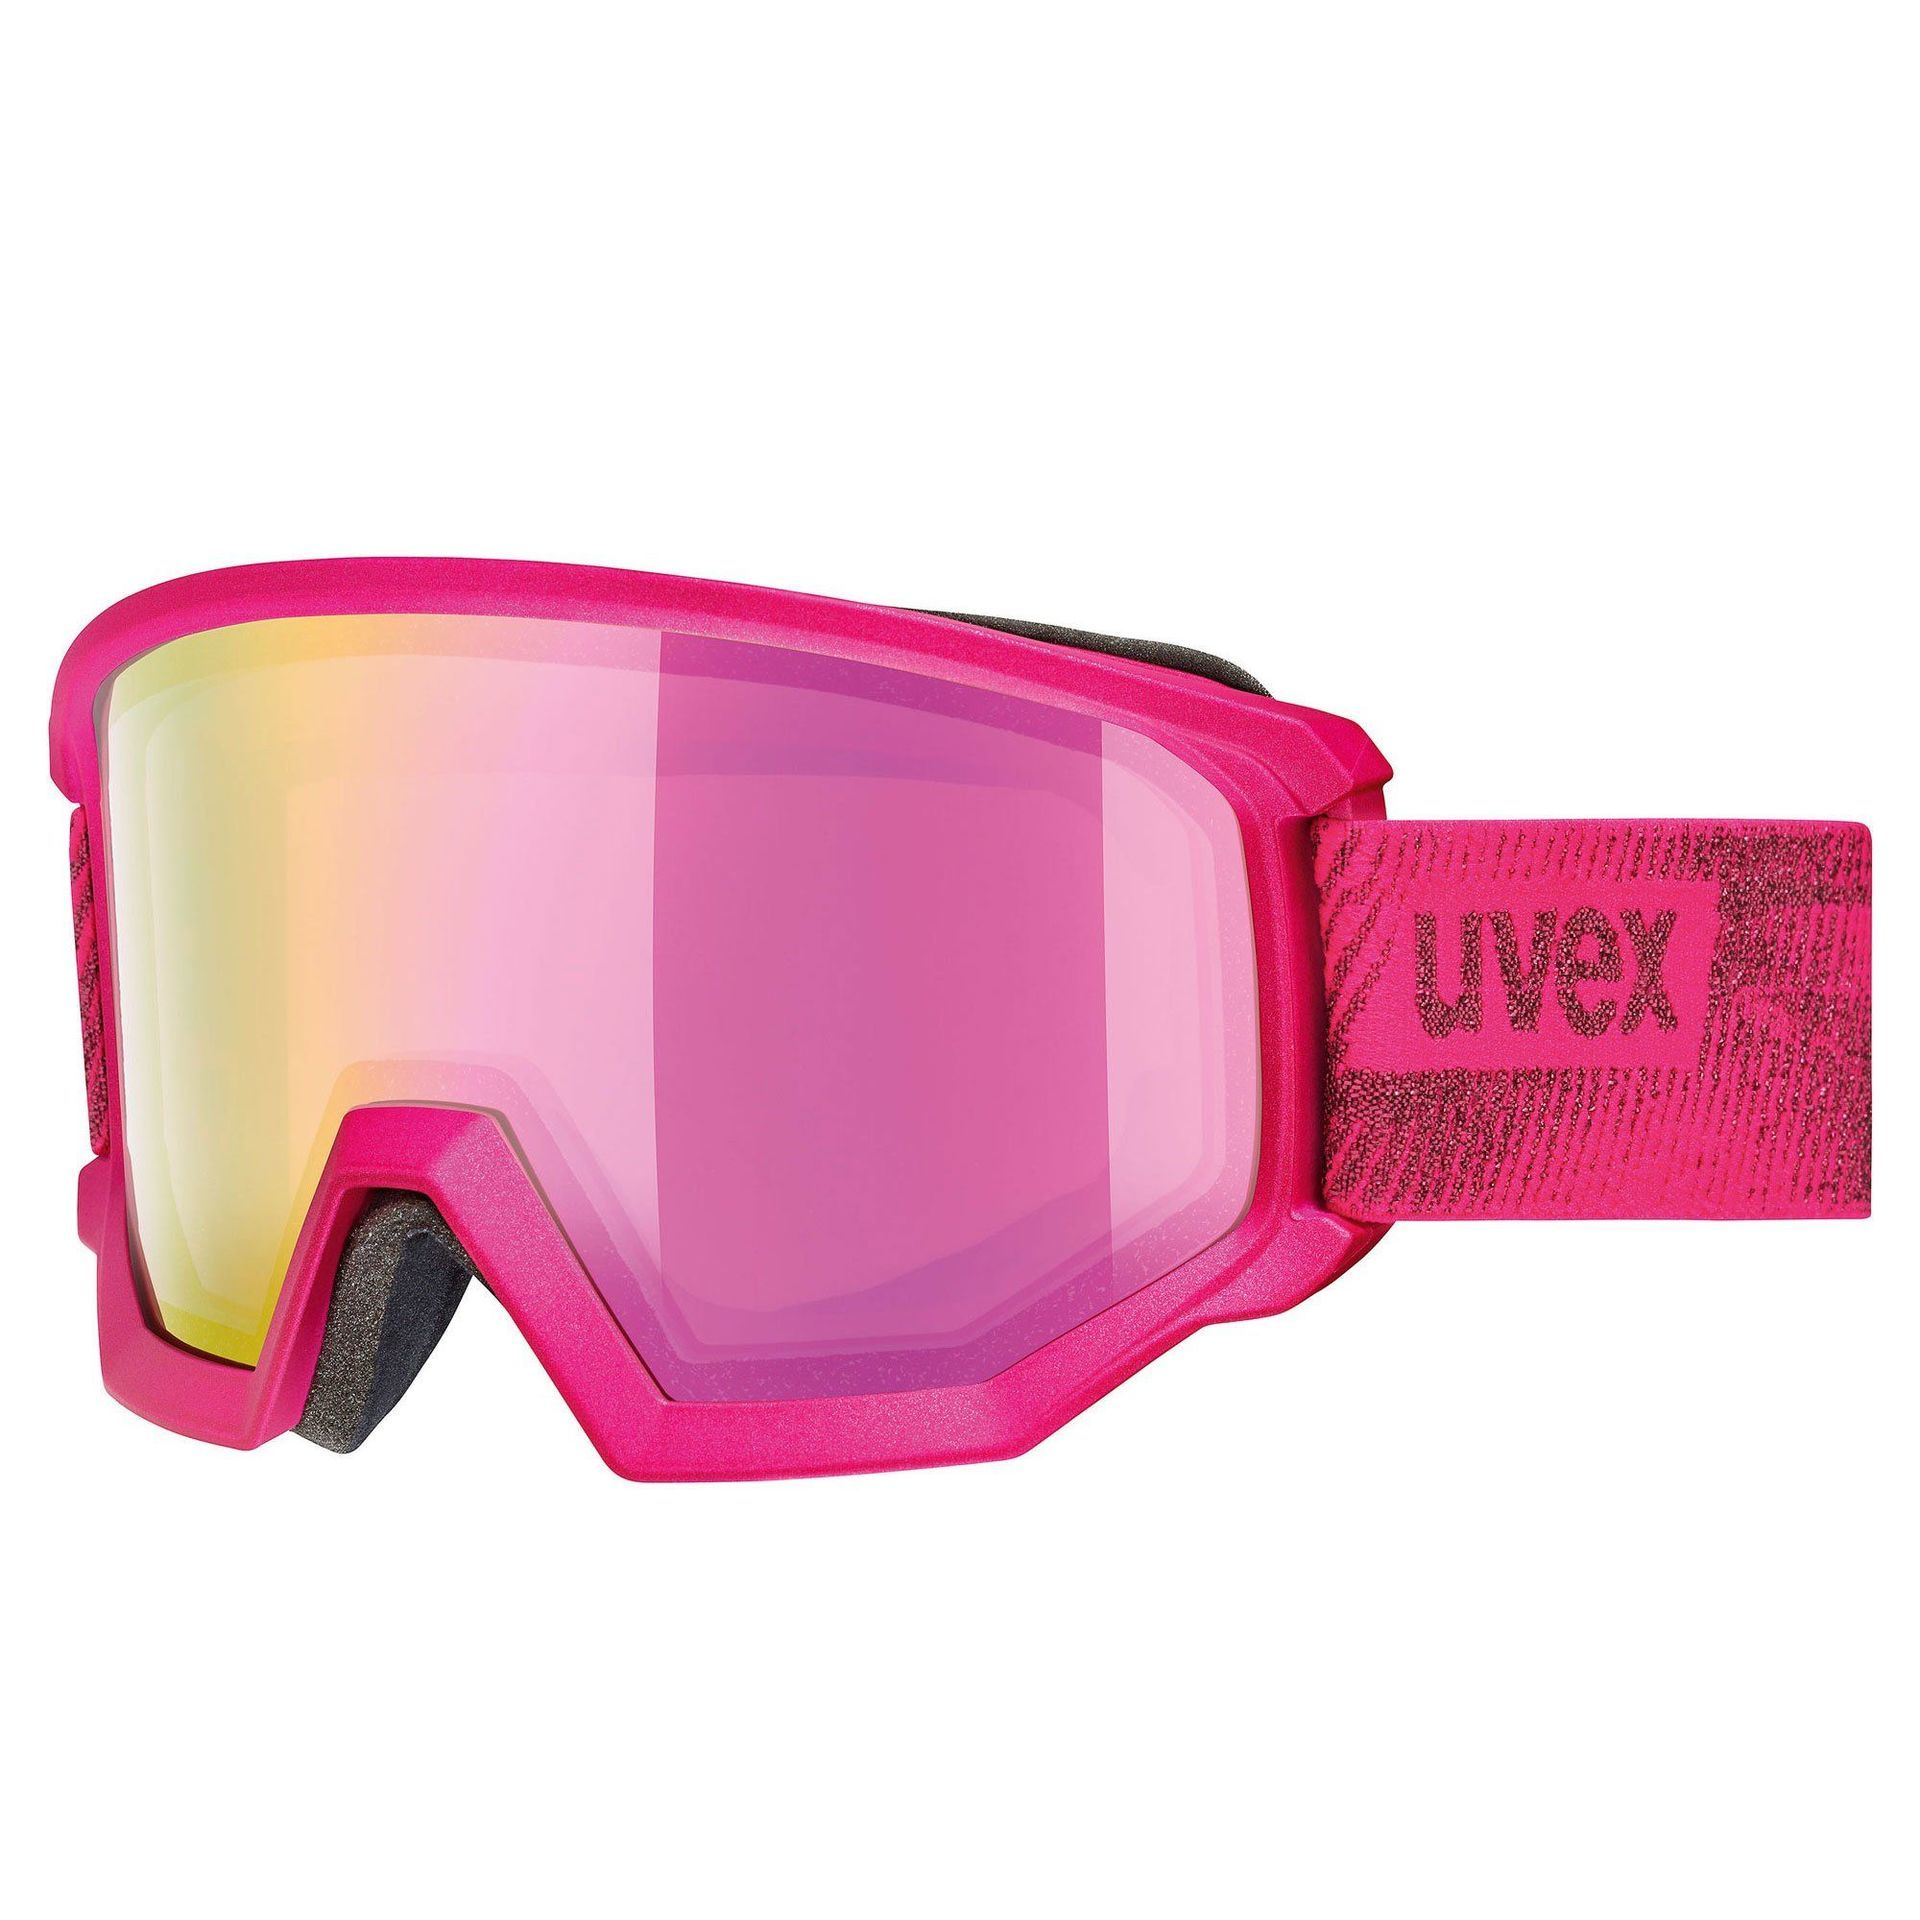 GOGLE UVEX ATHLETIC FM PINK MAT|MIRROR PINK 55|0|520|9030